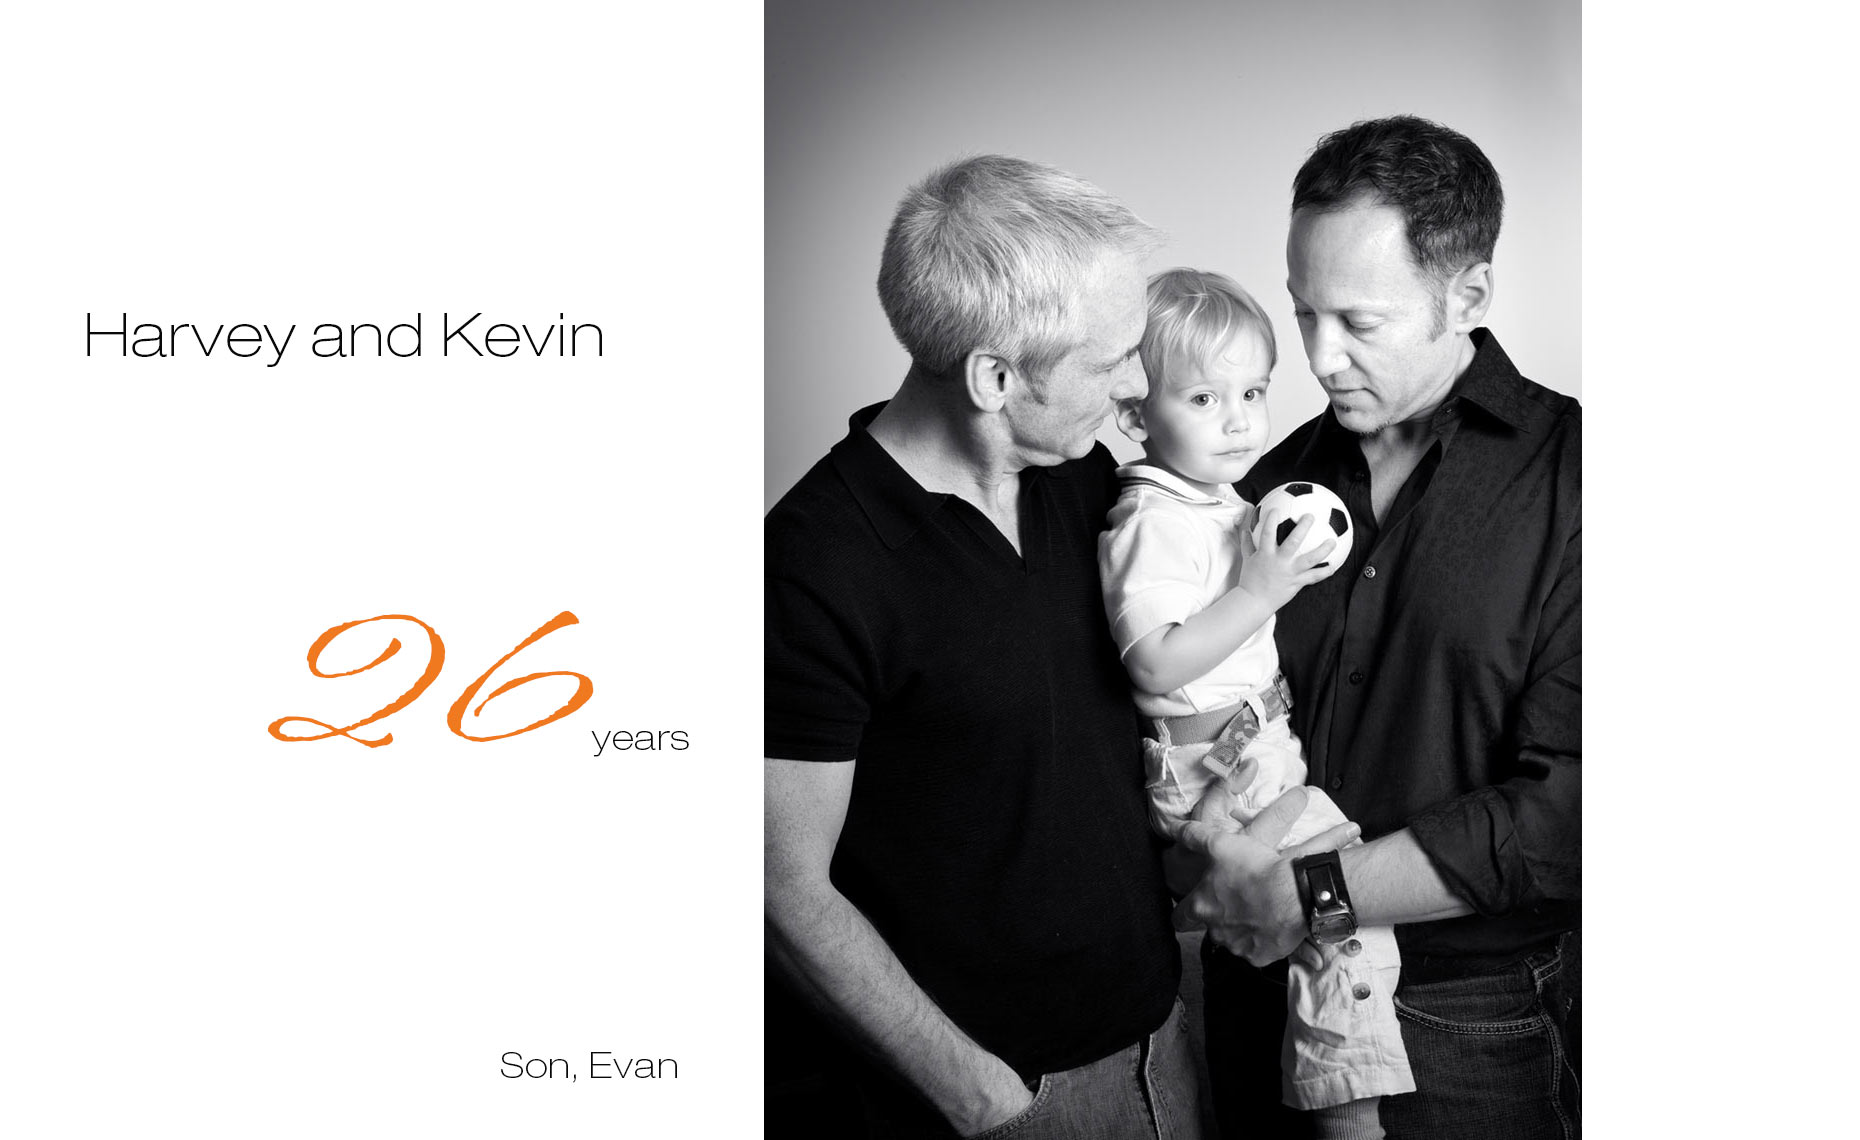 HarveyandKevin, together 26 years, First Comes Love,  LGBTQ Couple